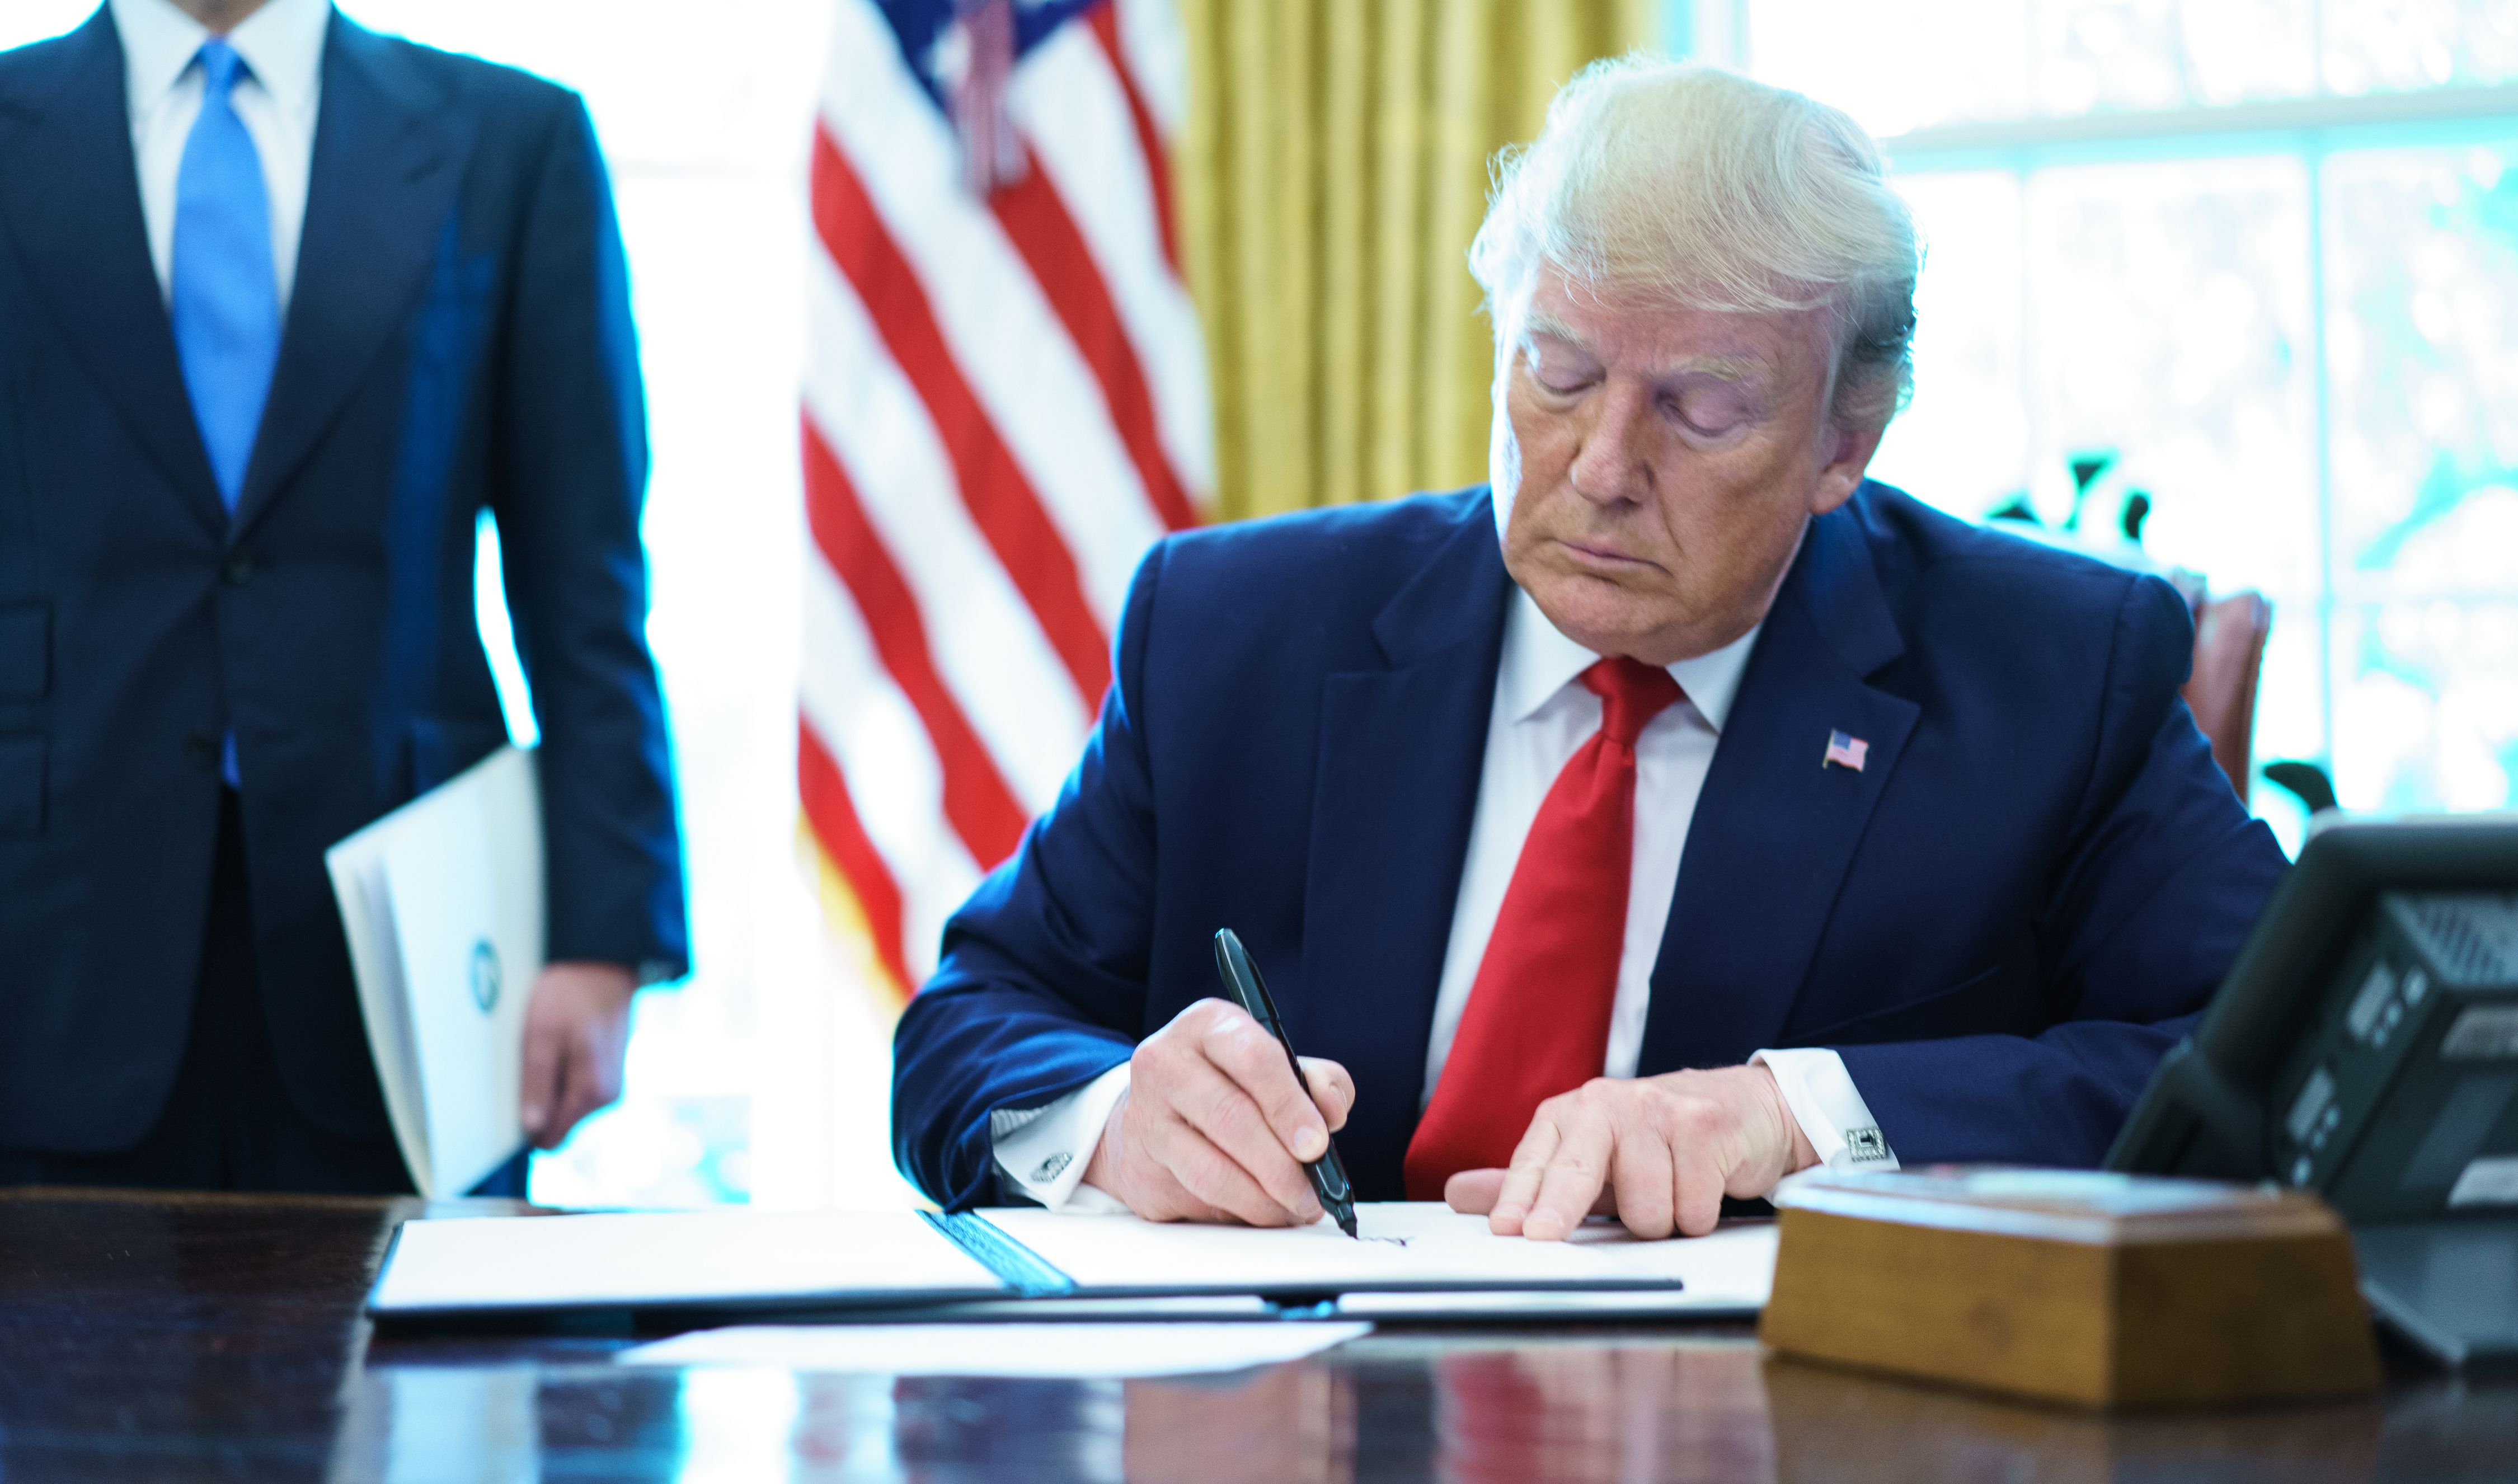 President Trump signs an executive order on Iran sanctions in the Oval Office of the White House on June 24, 2019.